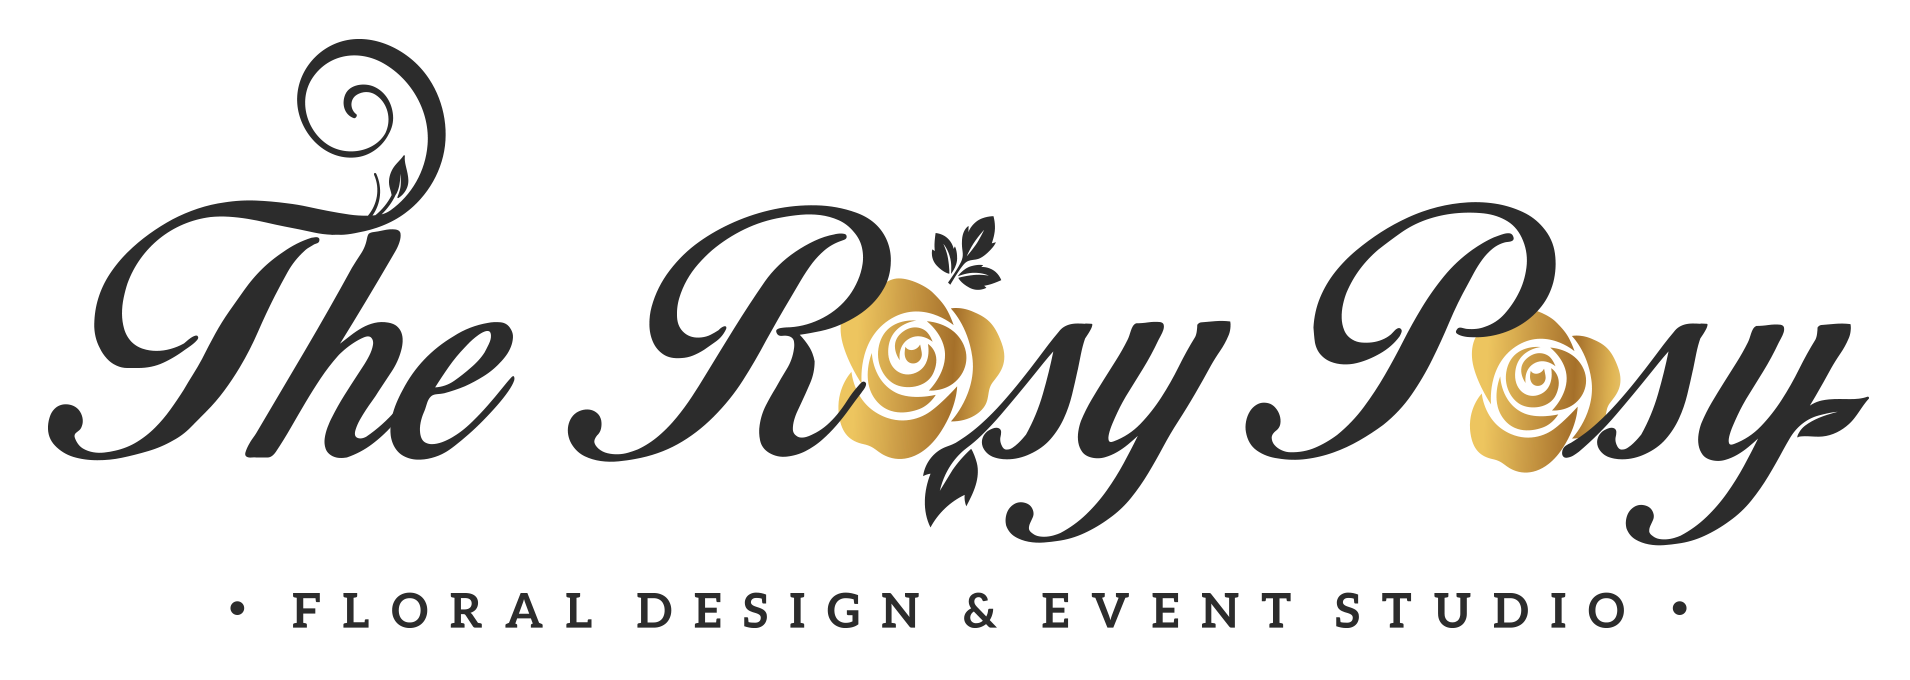 THE-ROSY-POSY-LOGO.png